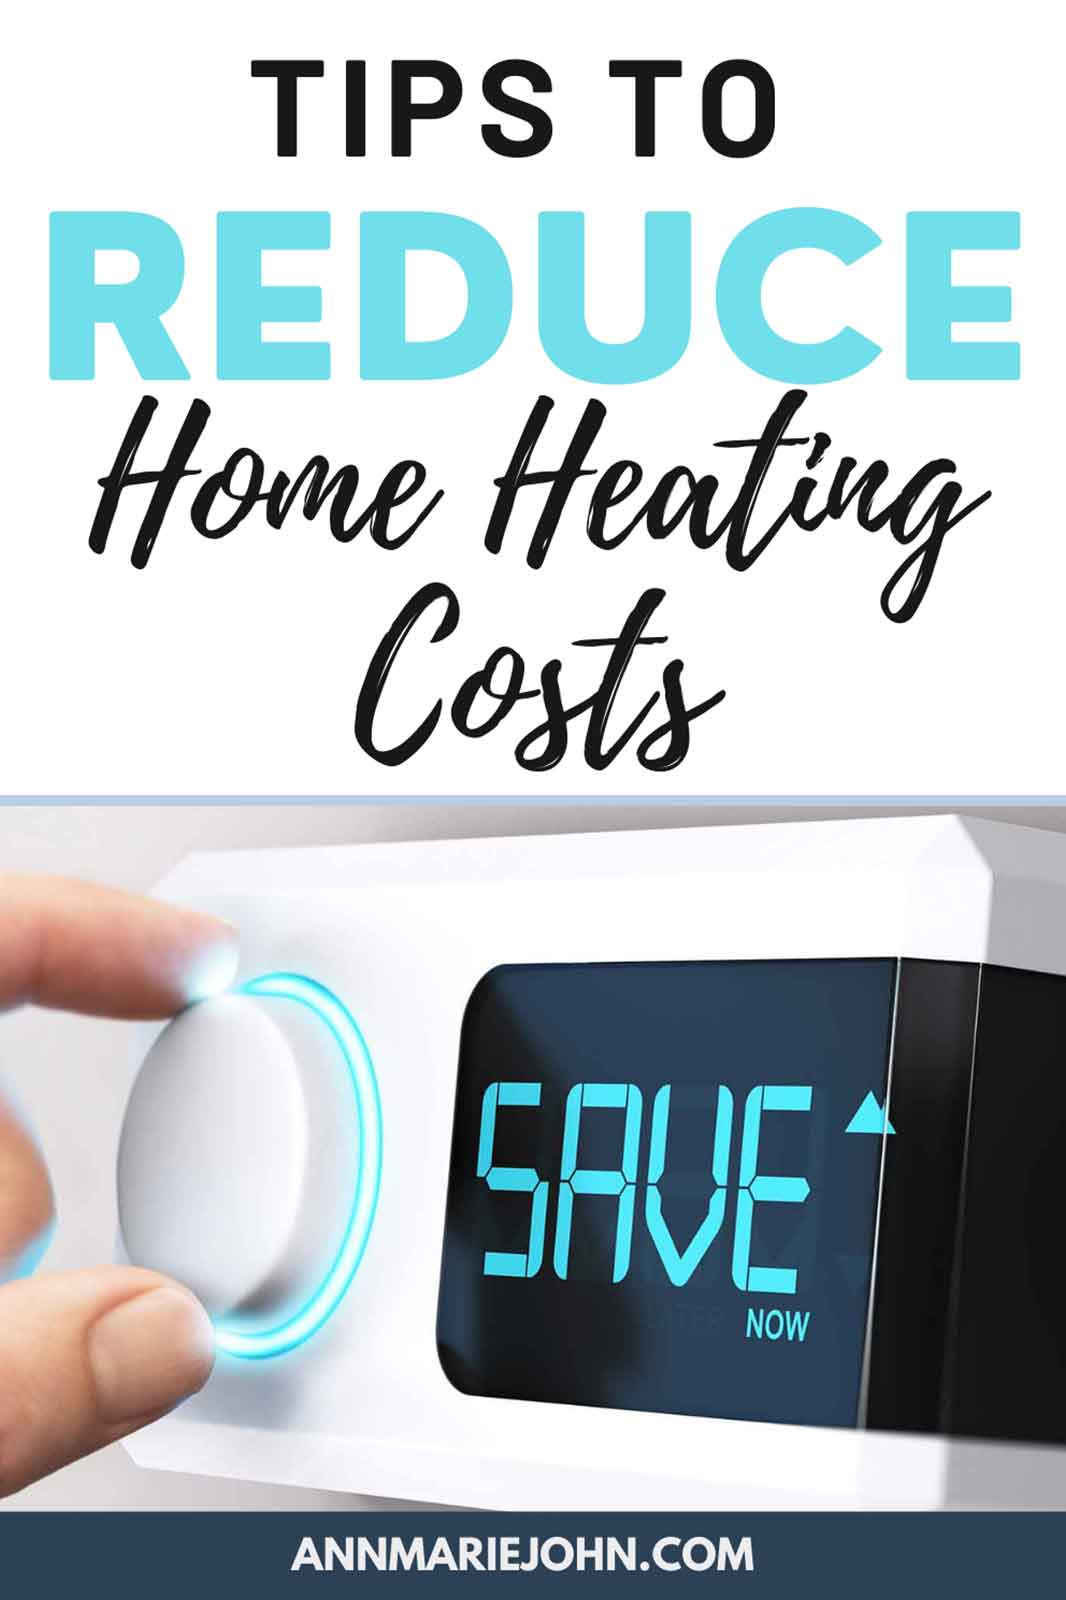 Tips to Reduce Home Heating Costs